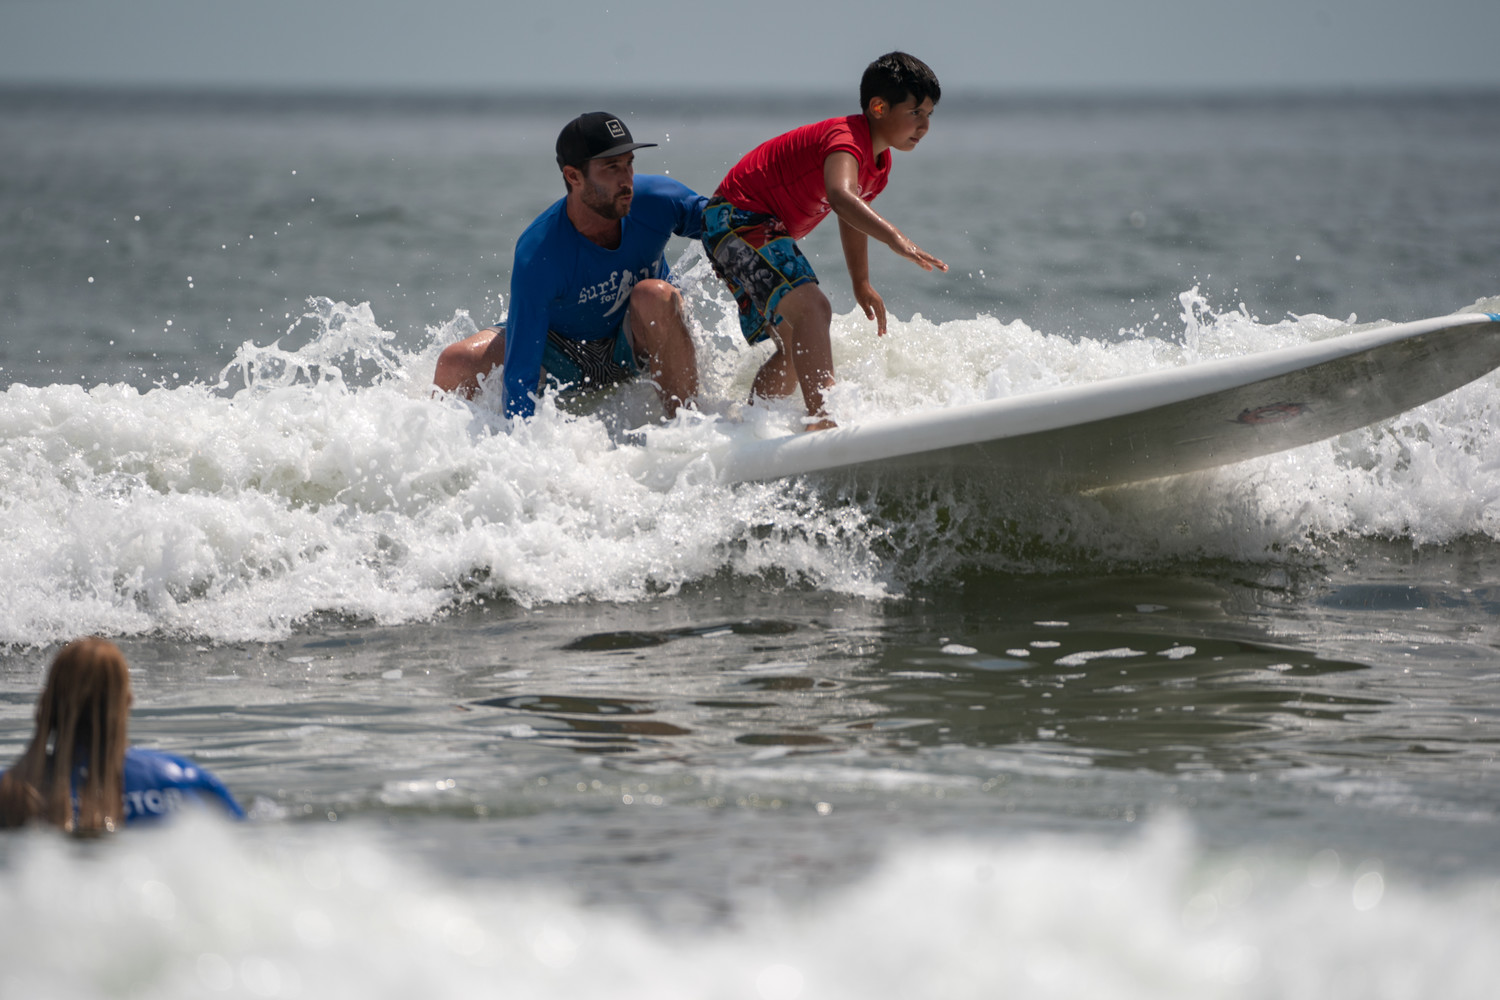 Volunteers assisted surfers with physical and developmental disabilities at the Surf for All outing.